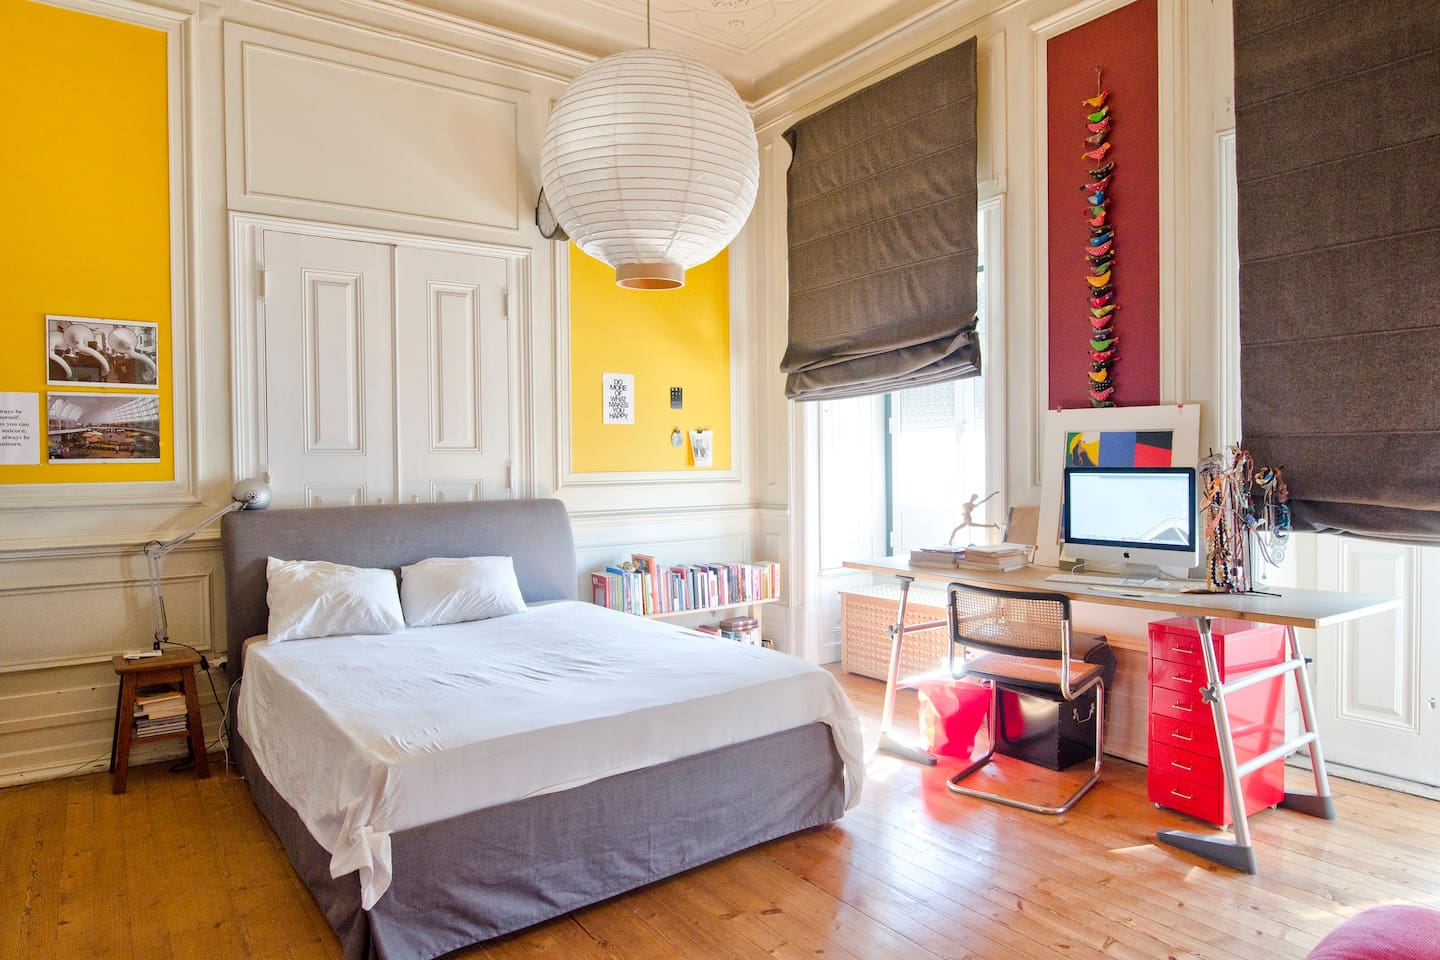 Room - King Size Bed + Sofa Bed - Window and a Balcony with a street view - WI-FI